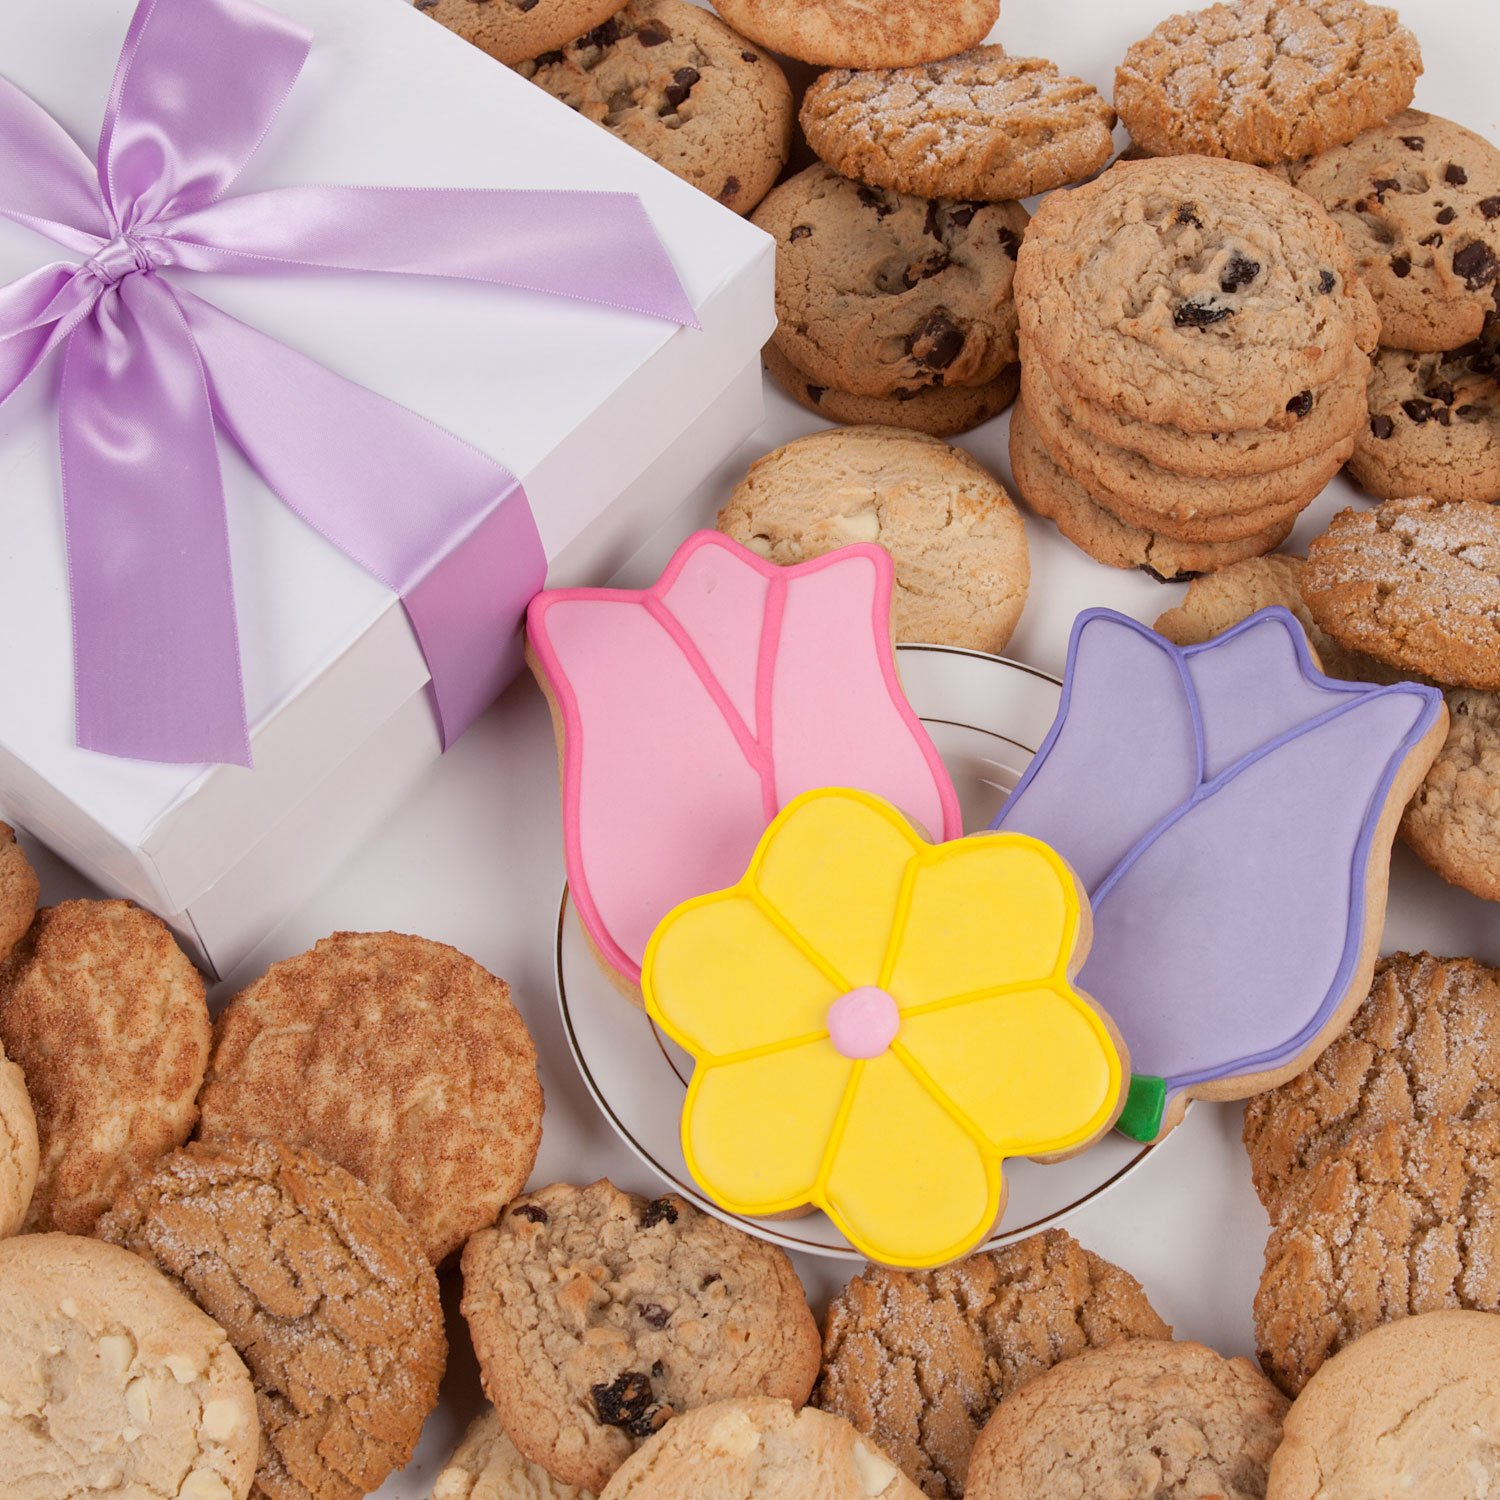 Tulips and Daisy Signature Cookie Gift Box- 12 Pc. by Lady Fortunes (Image #1)